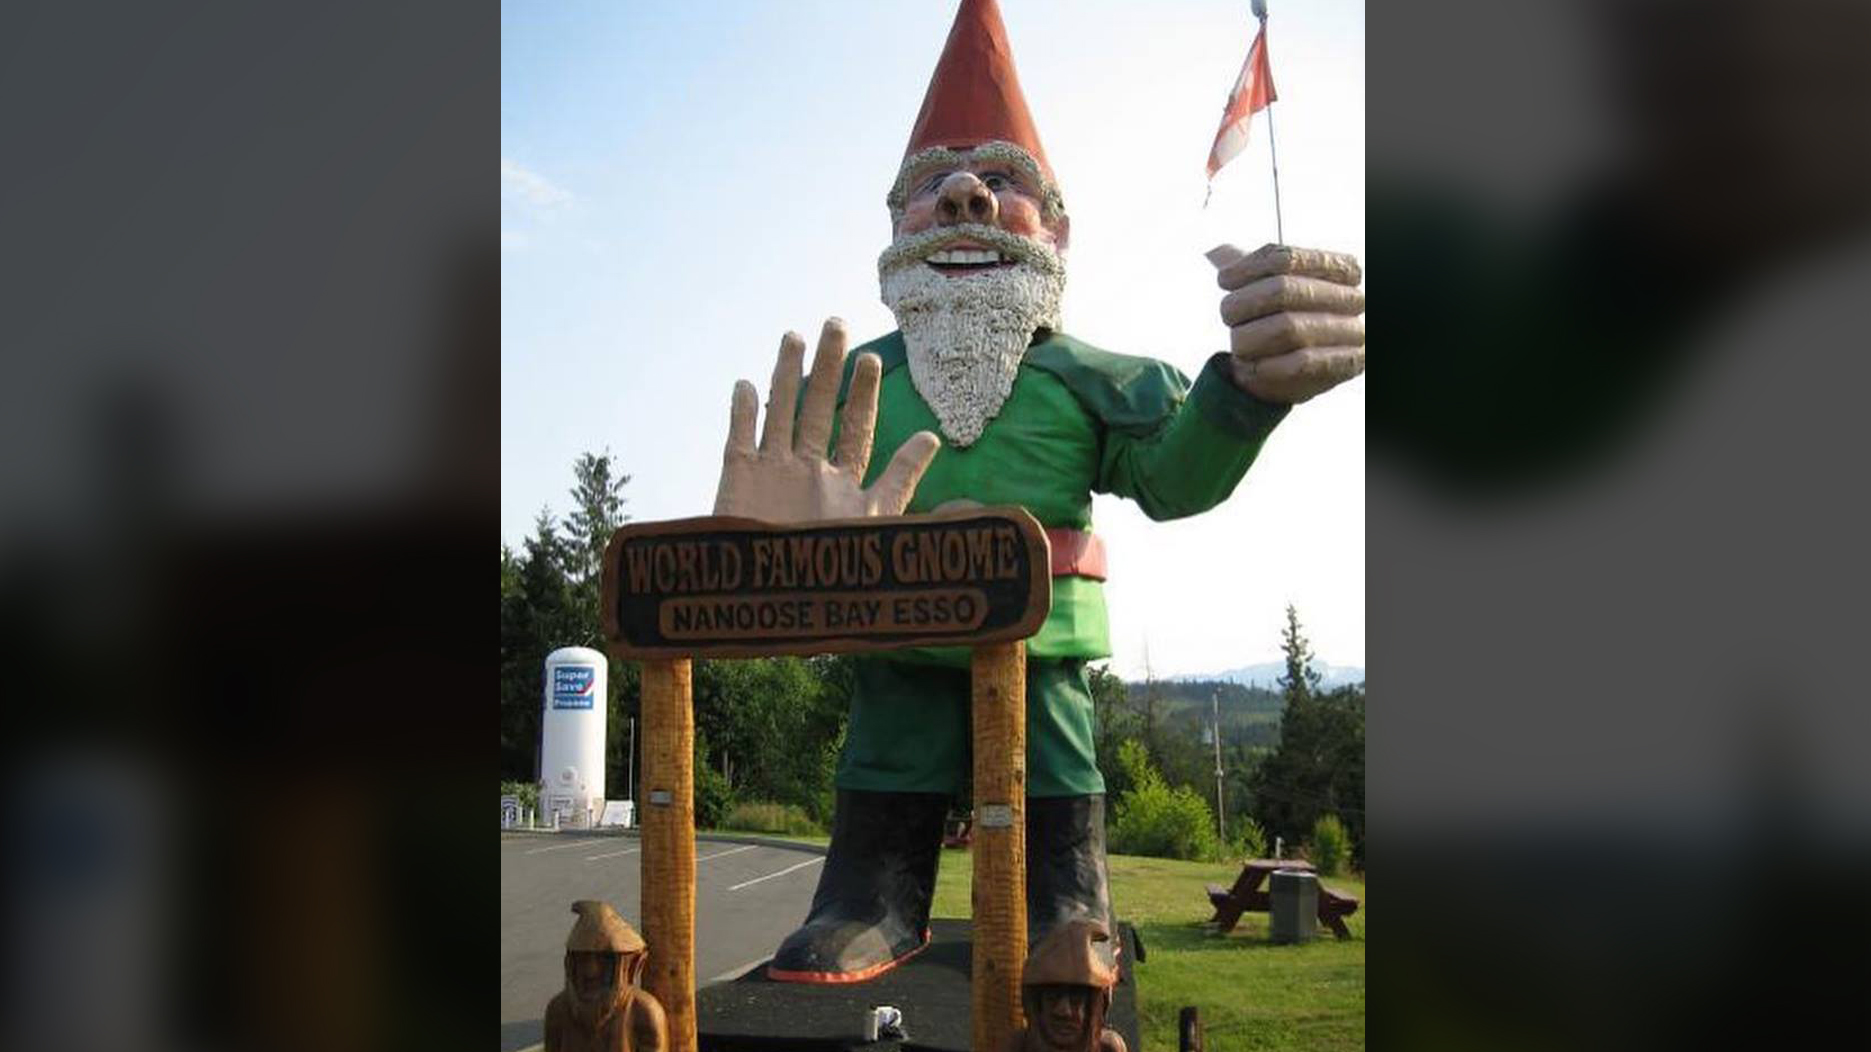 Howard' the world's largest gnome in B.C. needs new home ... on love house plans, fairy house plans, gnome house plans, spirit house plans, fish house plans, giant house plans, vampire house plans, house house plans, elvish house plans, toy story house plans, twilight house plans, horse house plans, tucker house plans, bear house plans, toad house plans, elf house plans, zombie house plans, angel house plans, pirate house plans, fox house plans,